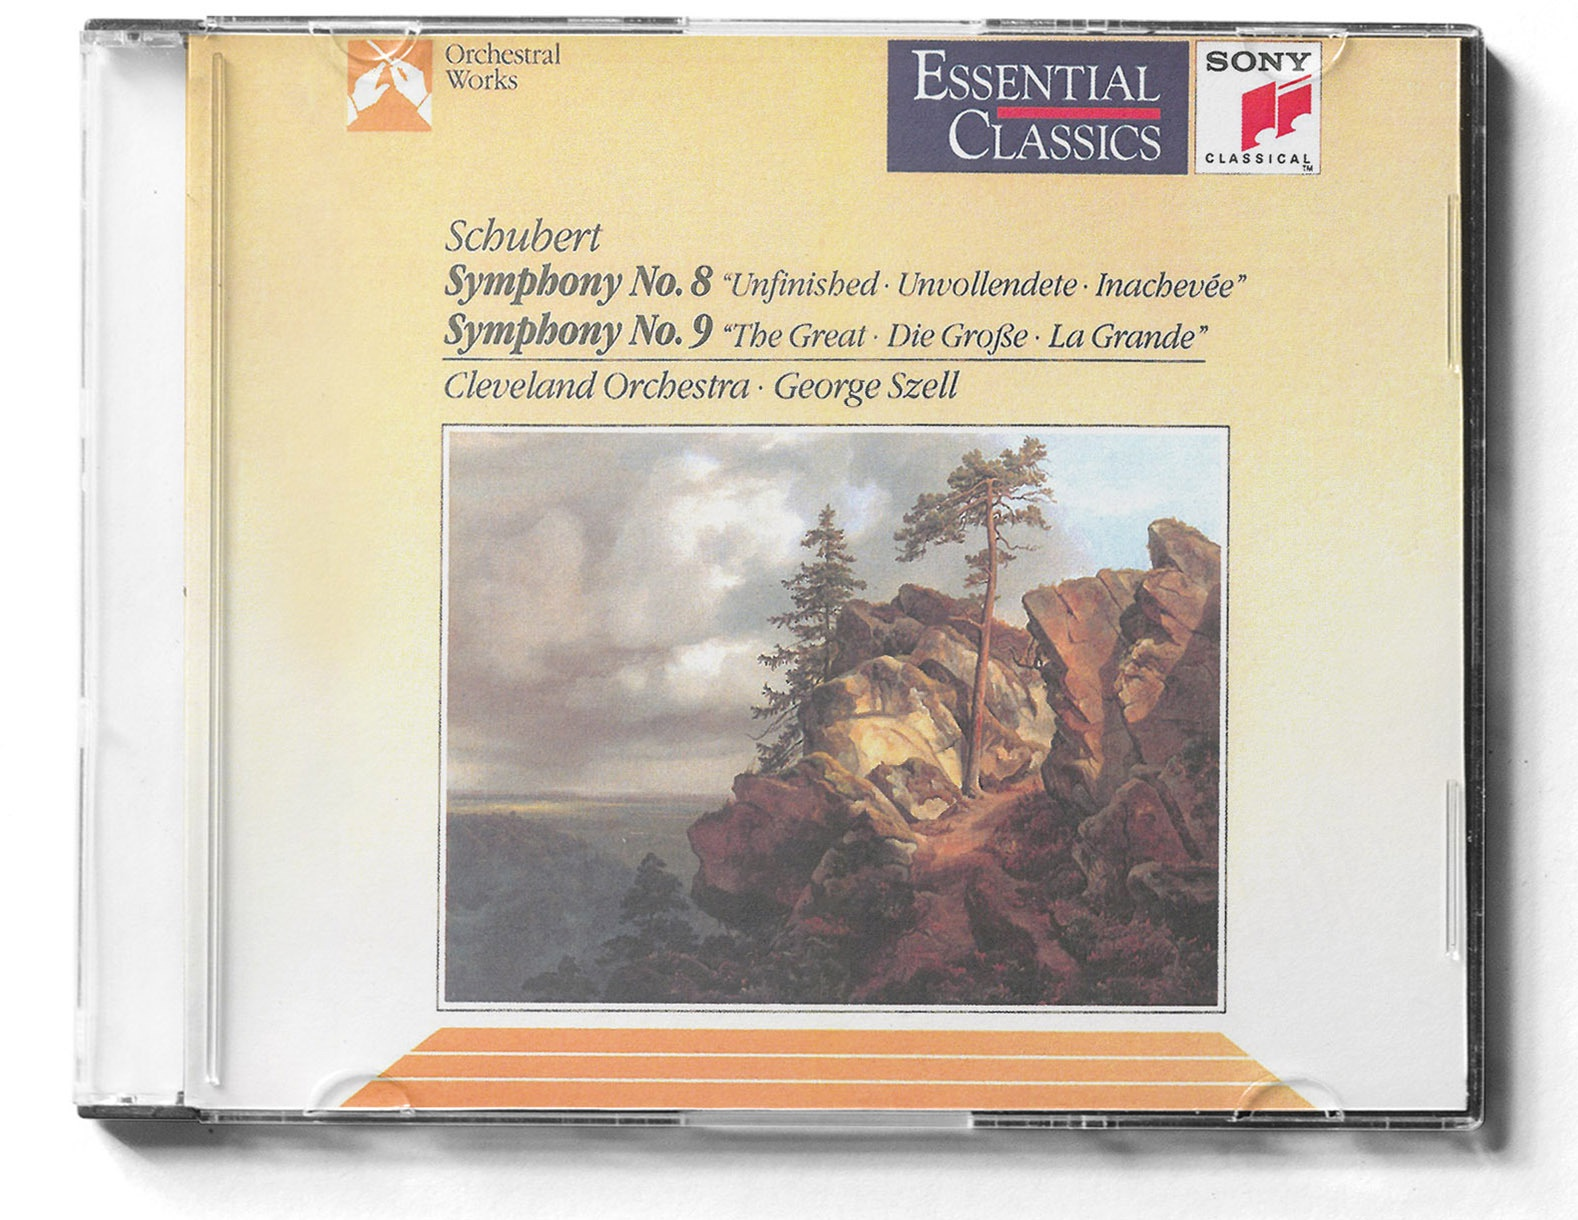 Schubert Symphonies no. 8 & 9